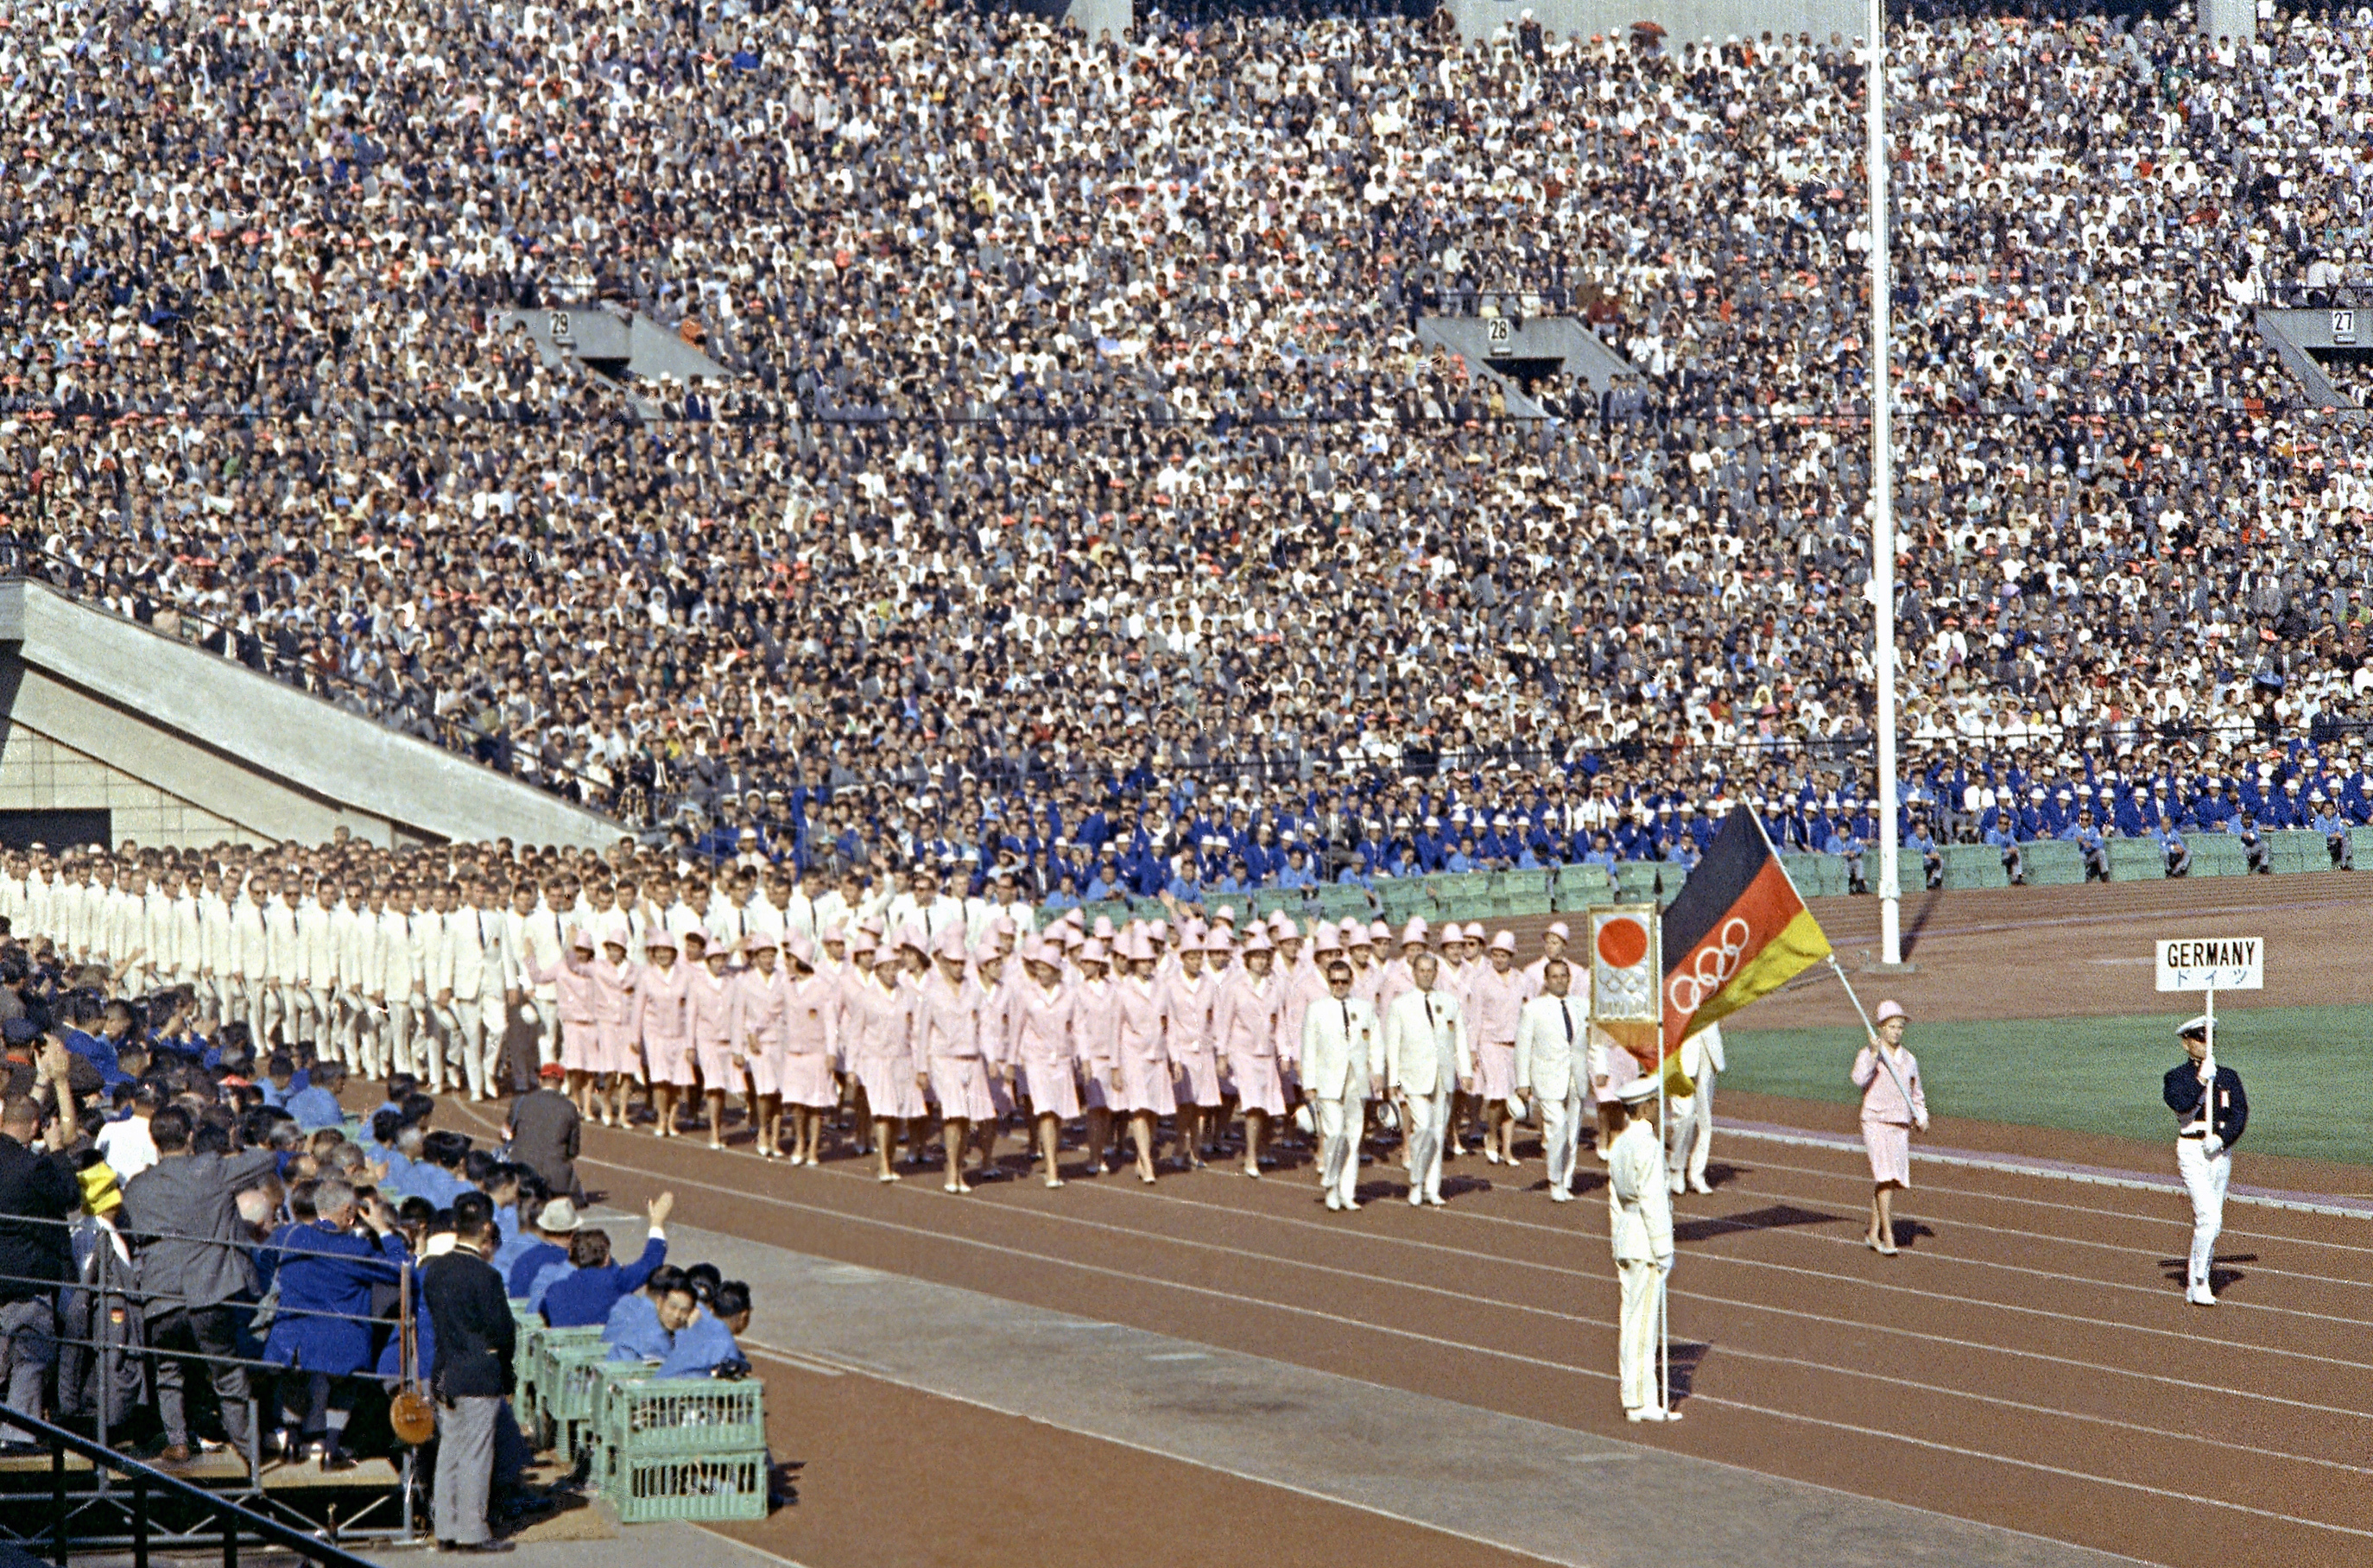 FILE - In this Oct. 10, 1964, file photo, the United Team of Germany enters the Olympic Stadium at the opening ceremony of the Summer Olympic Games in Tokyo, Japan. While Germany was a divided country, West Germany and East Germany, from 1956 to 1964, cam